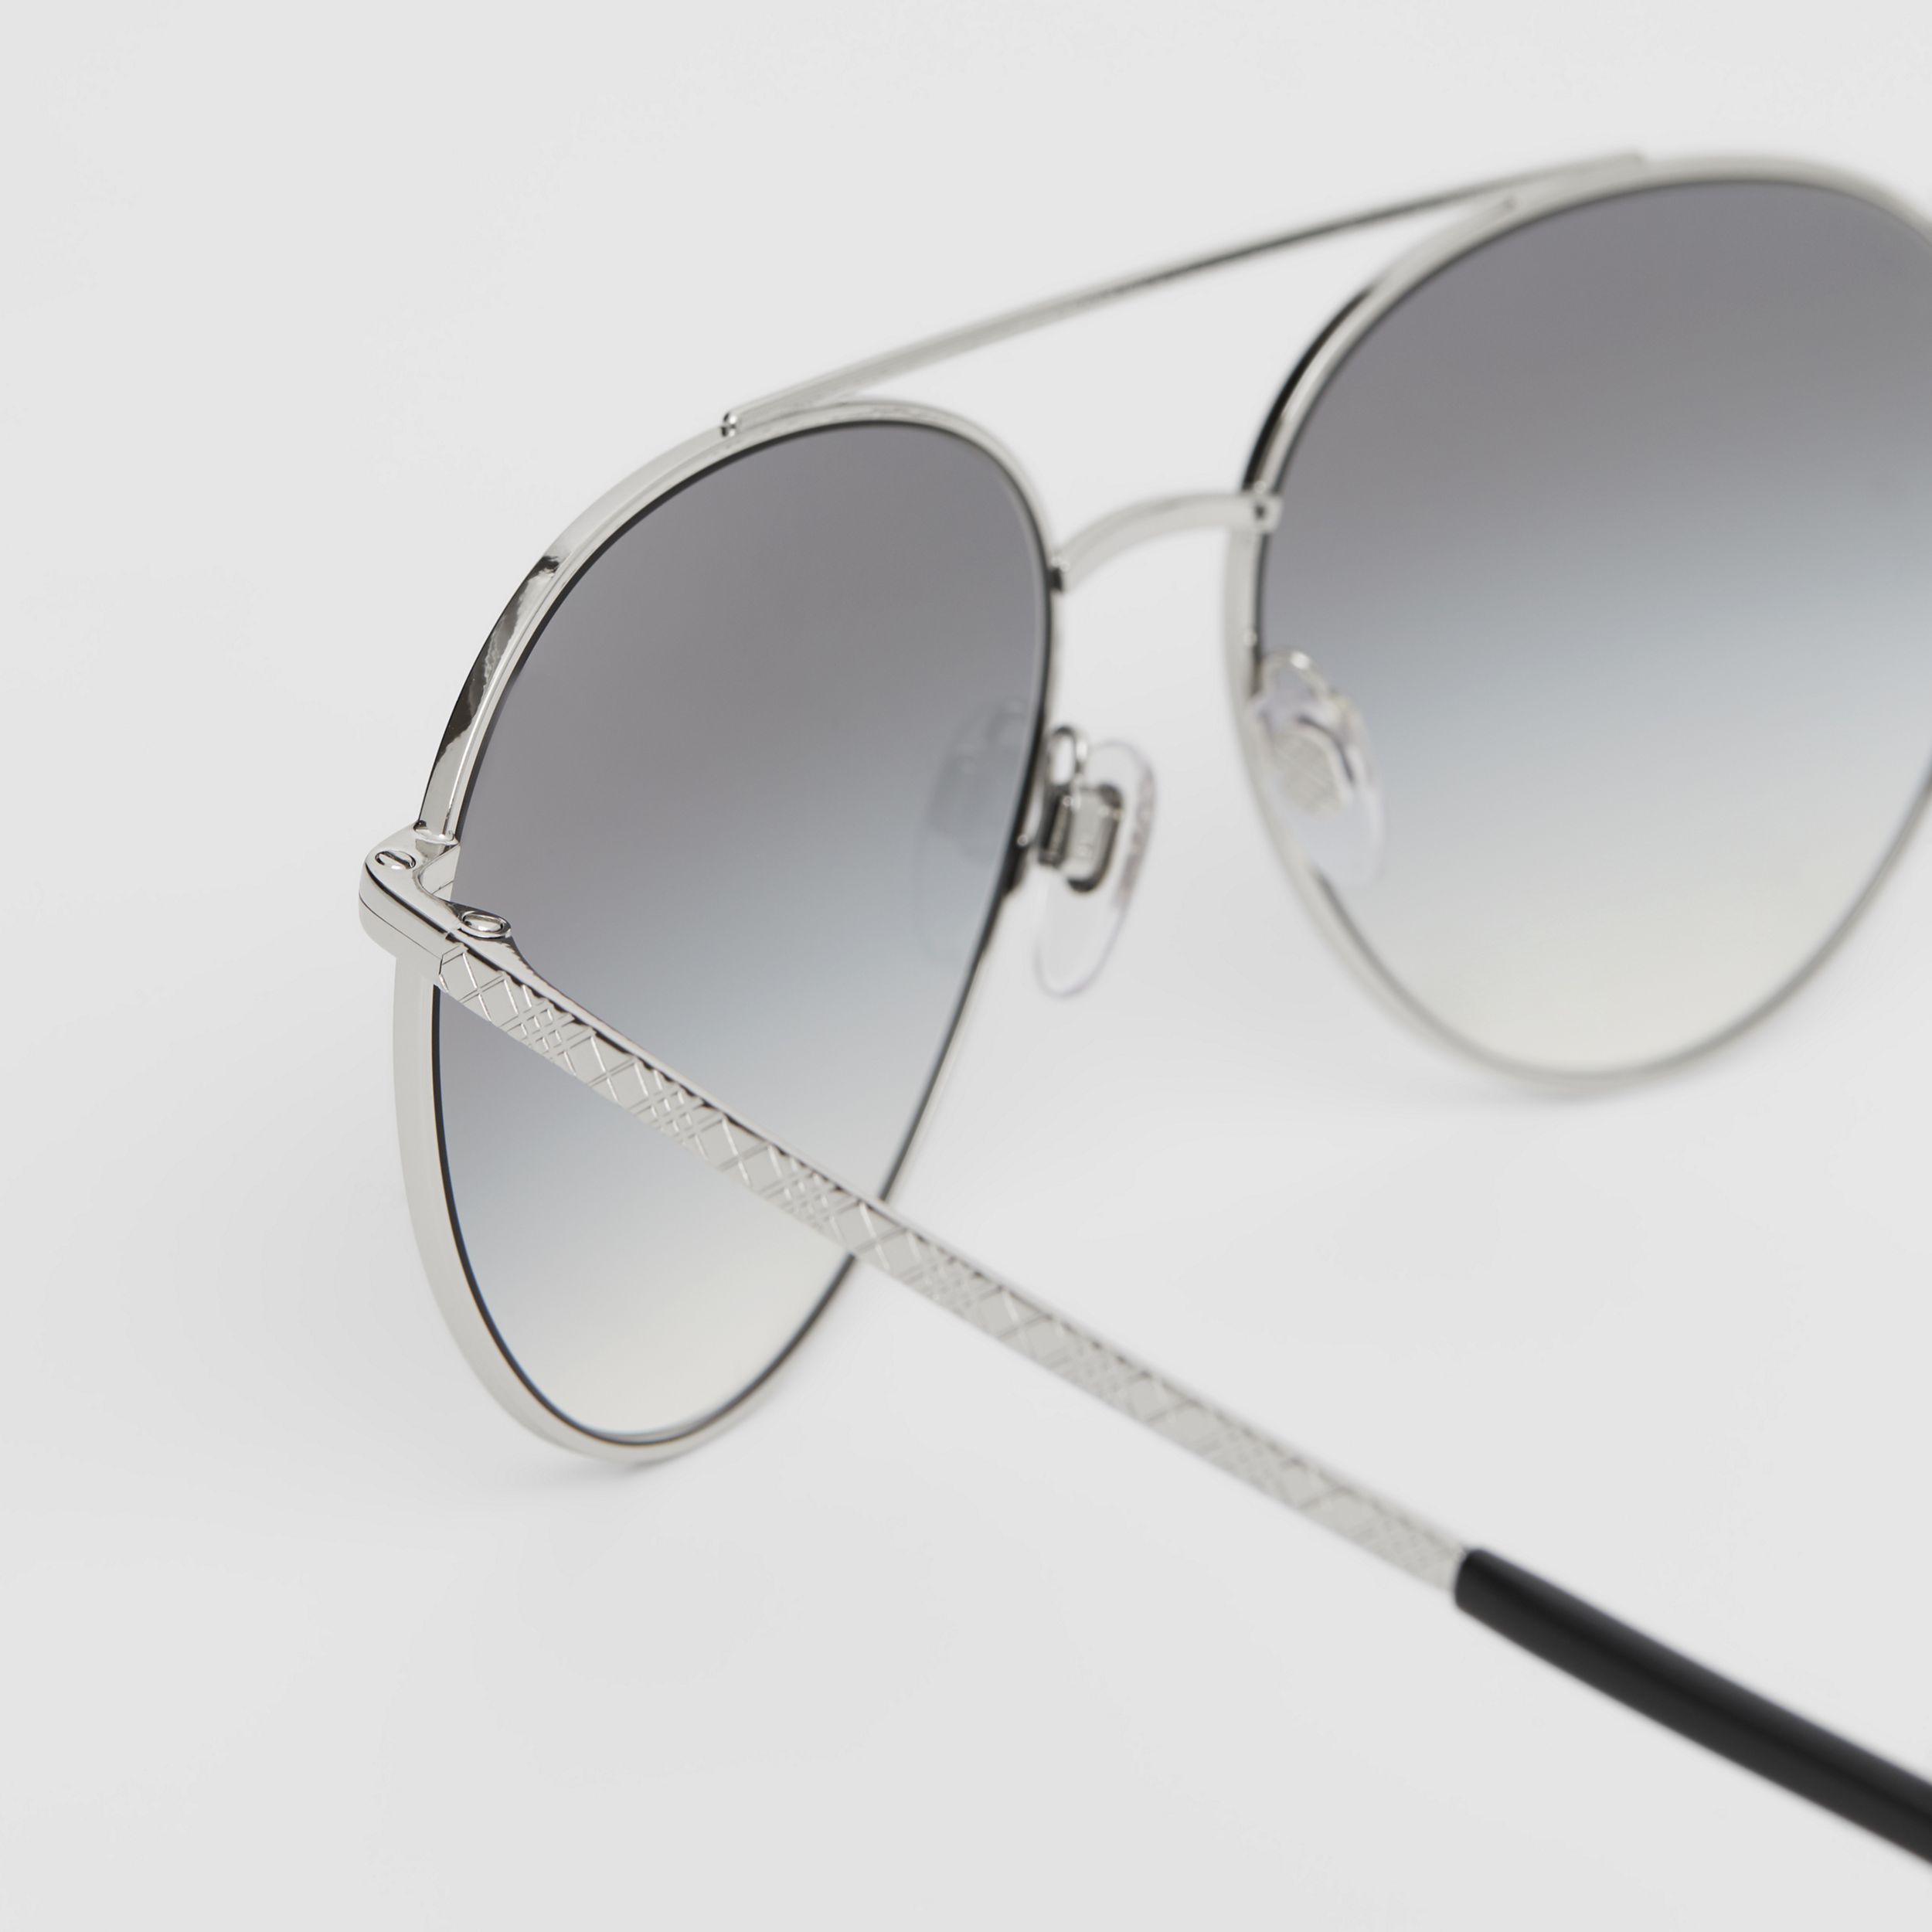 Pilot Sunglasses in Grey - Women | Burberry Australia - 2